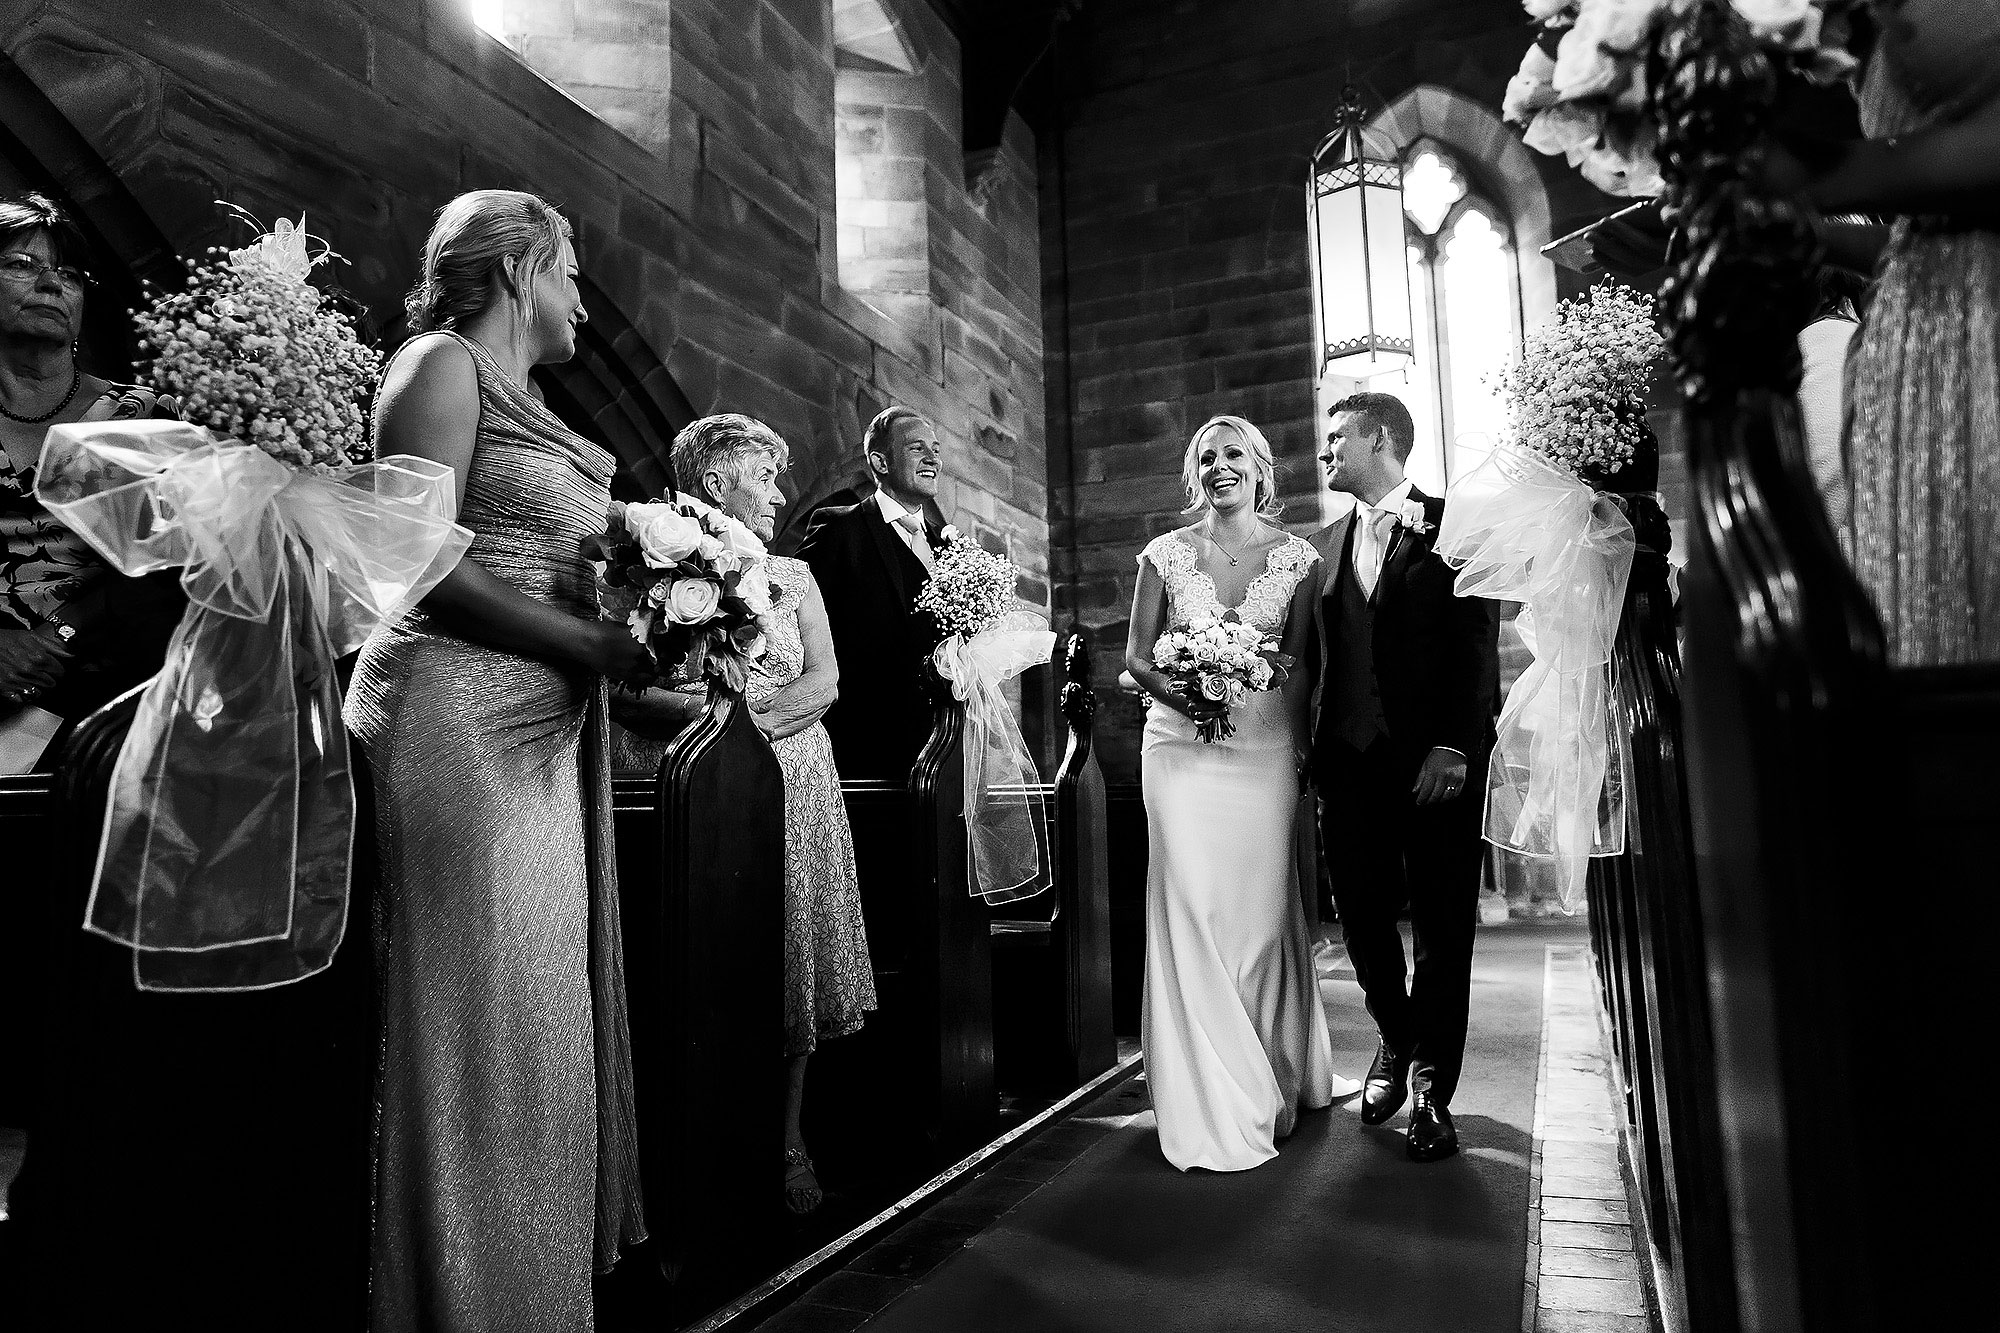 Bride and groom walking down the aisle of the chapel at Peckforton Castle | Peckforton Castle Wedding by Toni Darcy Photography